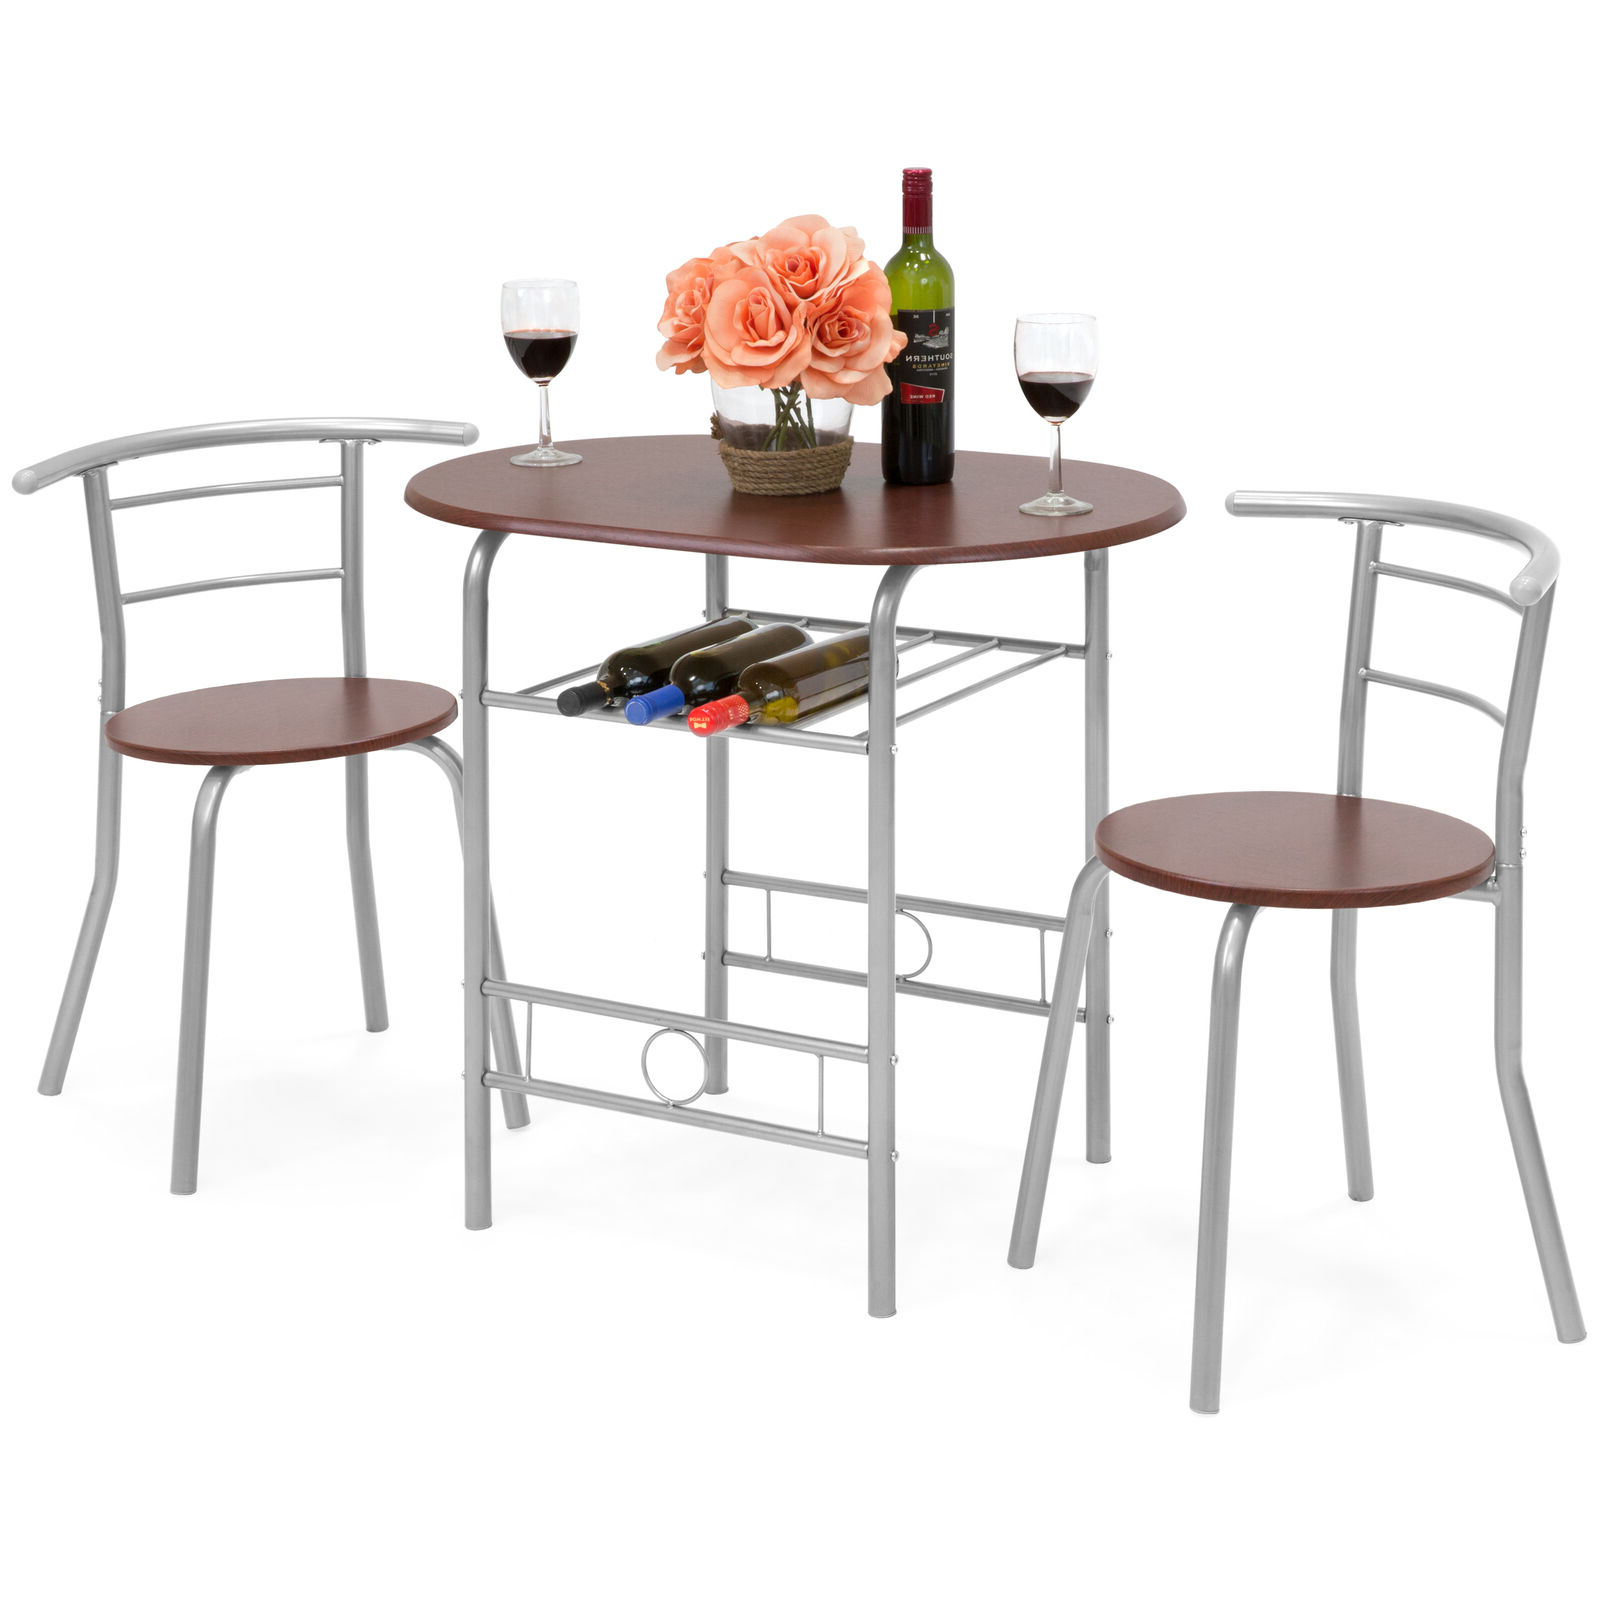 Bcp 3 Piece Wooden Dining Table Set W/ 2 Chairs, 1 Table (View 25 of 30)